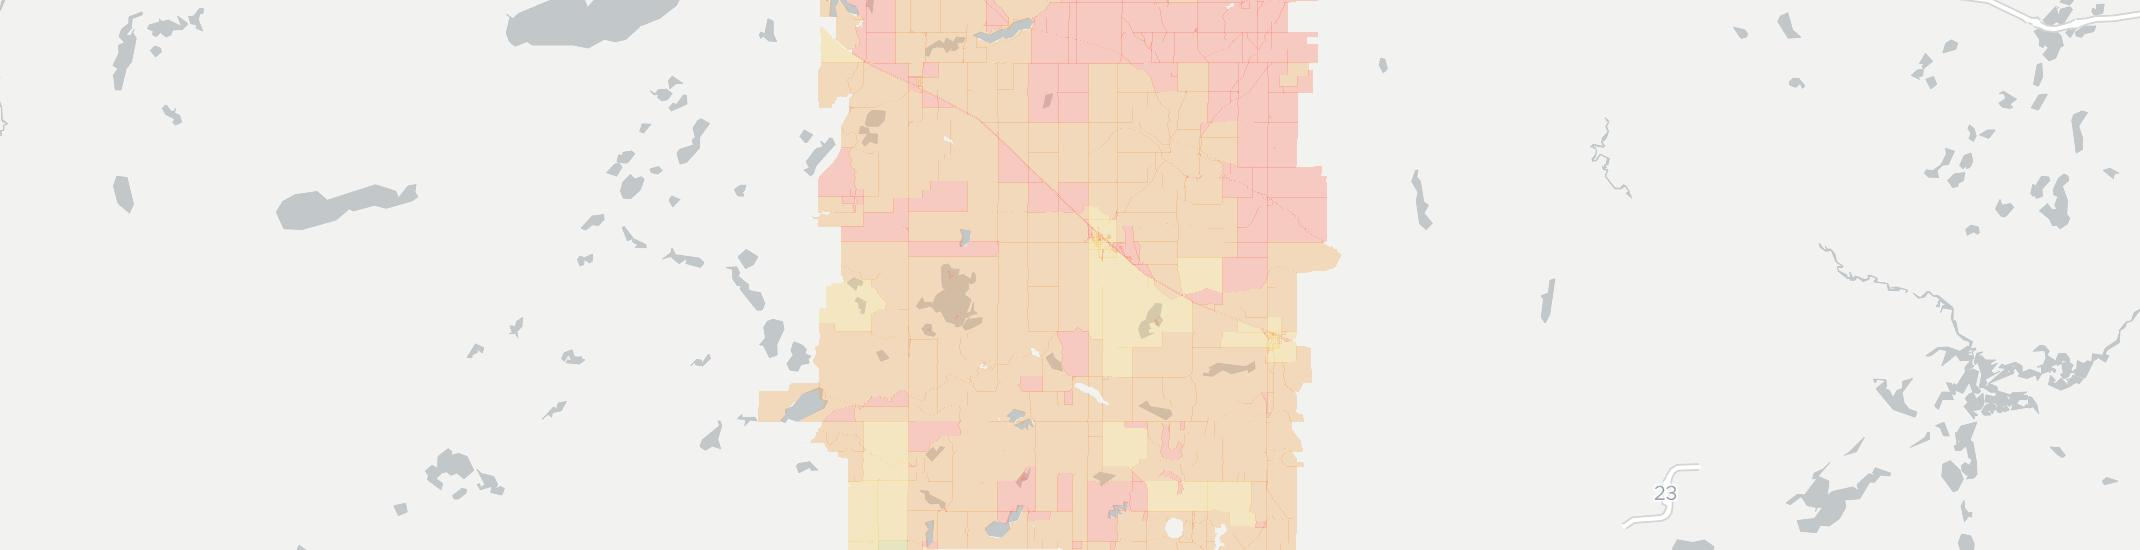 Brooten Internet Competition Map. Click for interactive map.